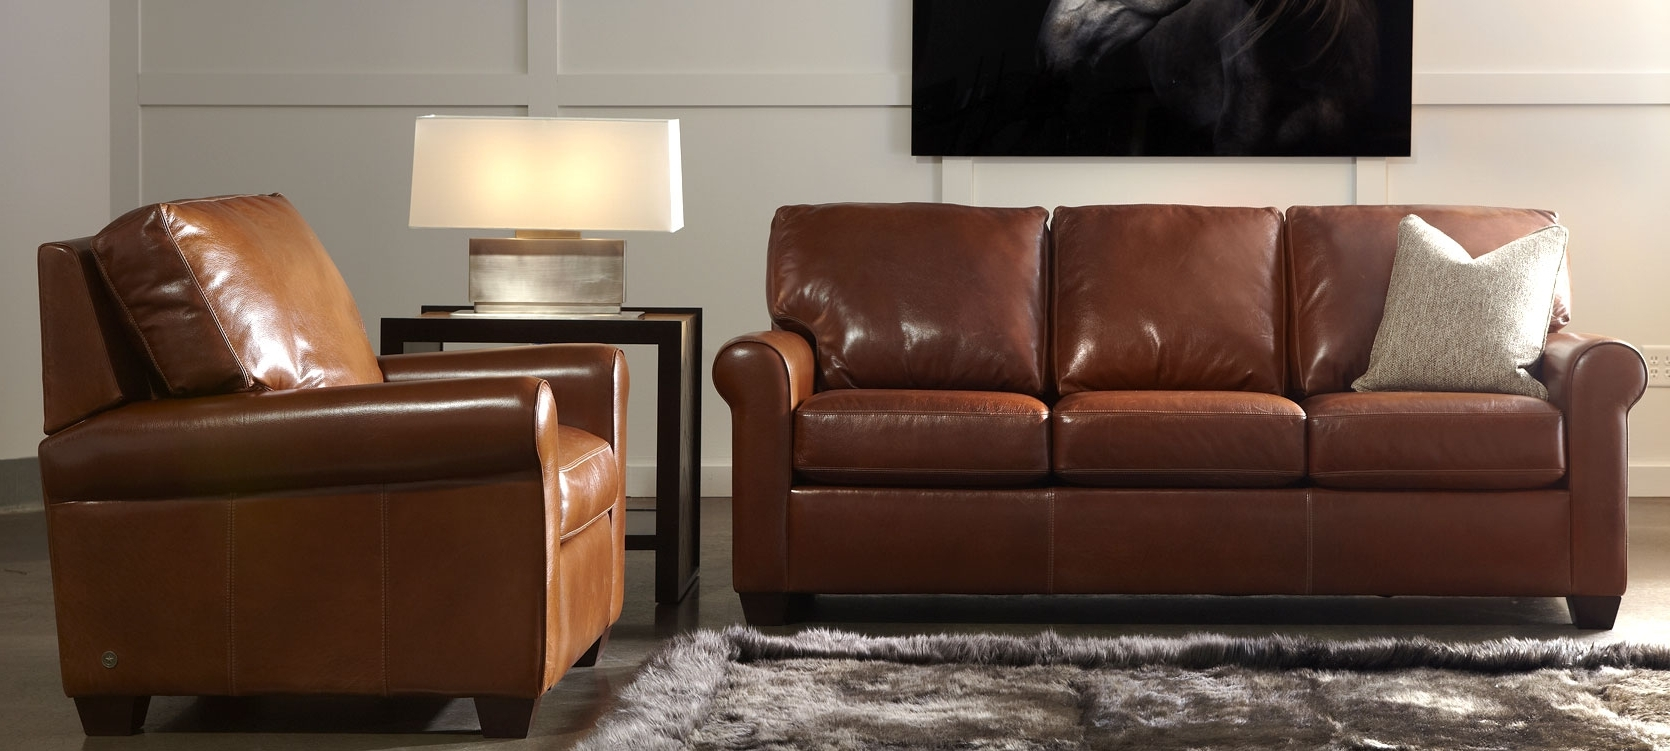 Eugene Oregon Sectional Sofas Throughout Famous Furniture Store In Eugene, Oregon – Riley's Real Wood Furniture (View 8 of 20)